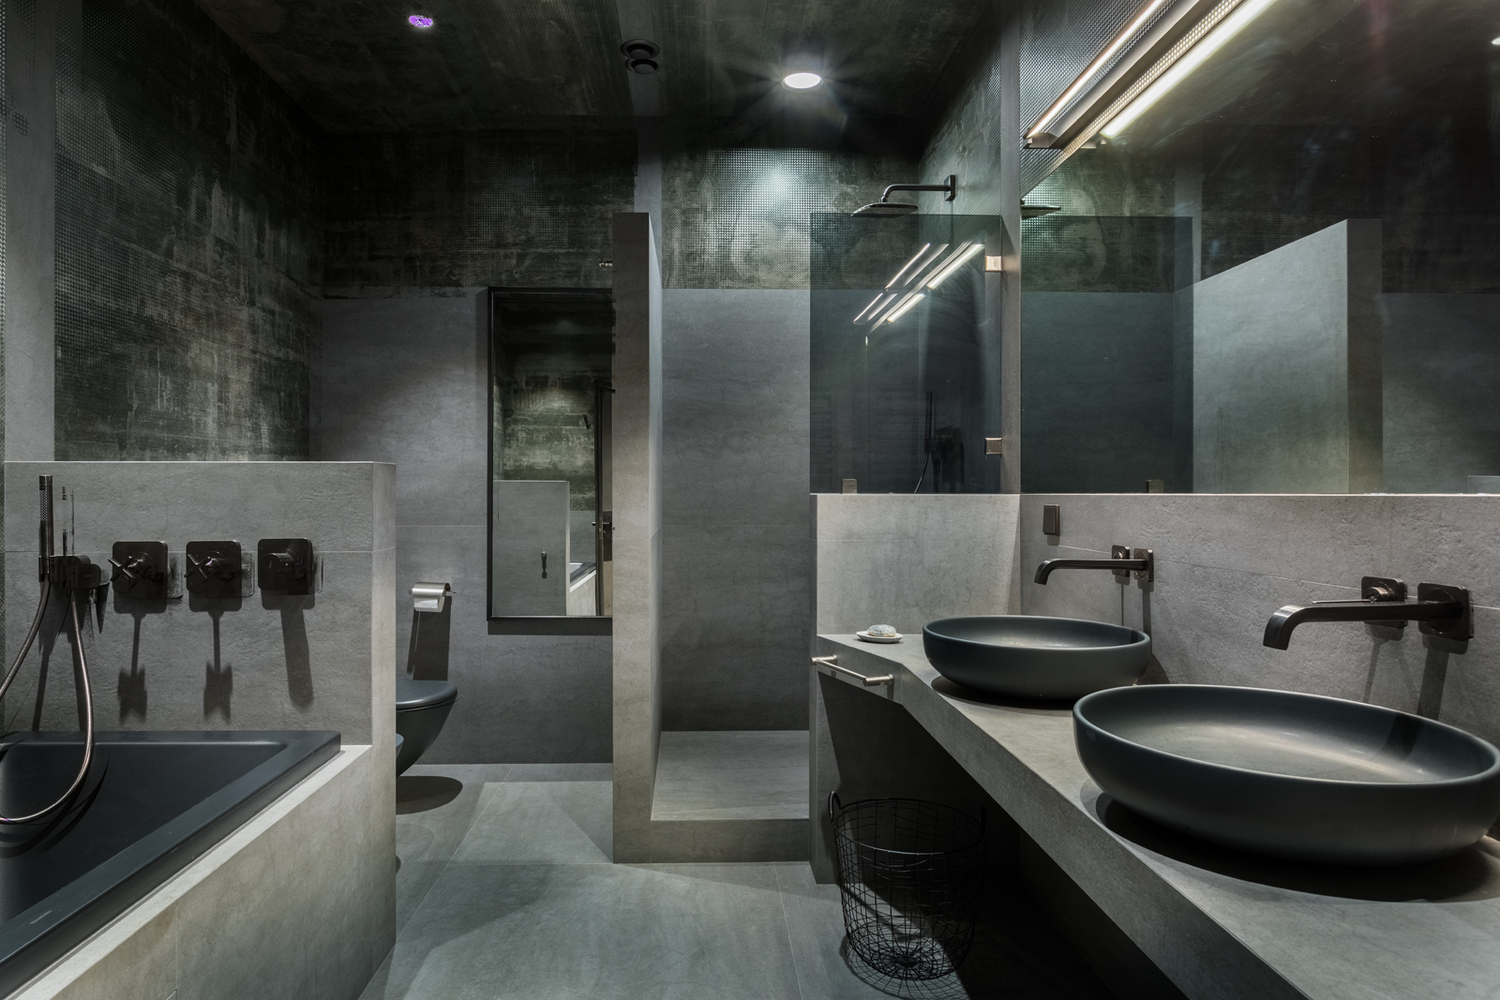 Gray is also the main color featured in the bathrooms and the design doesn't lack character